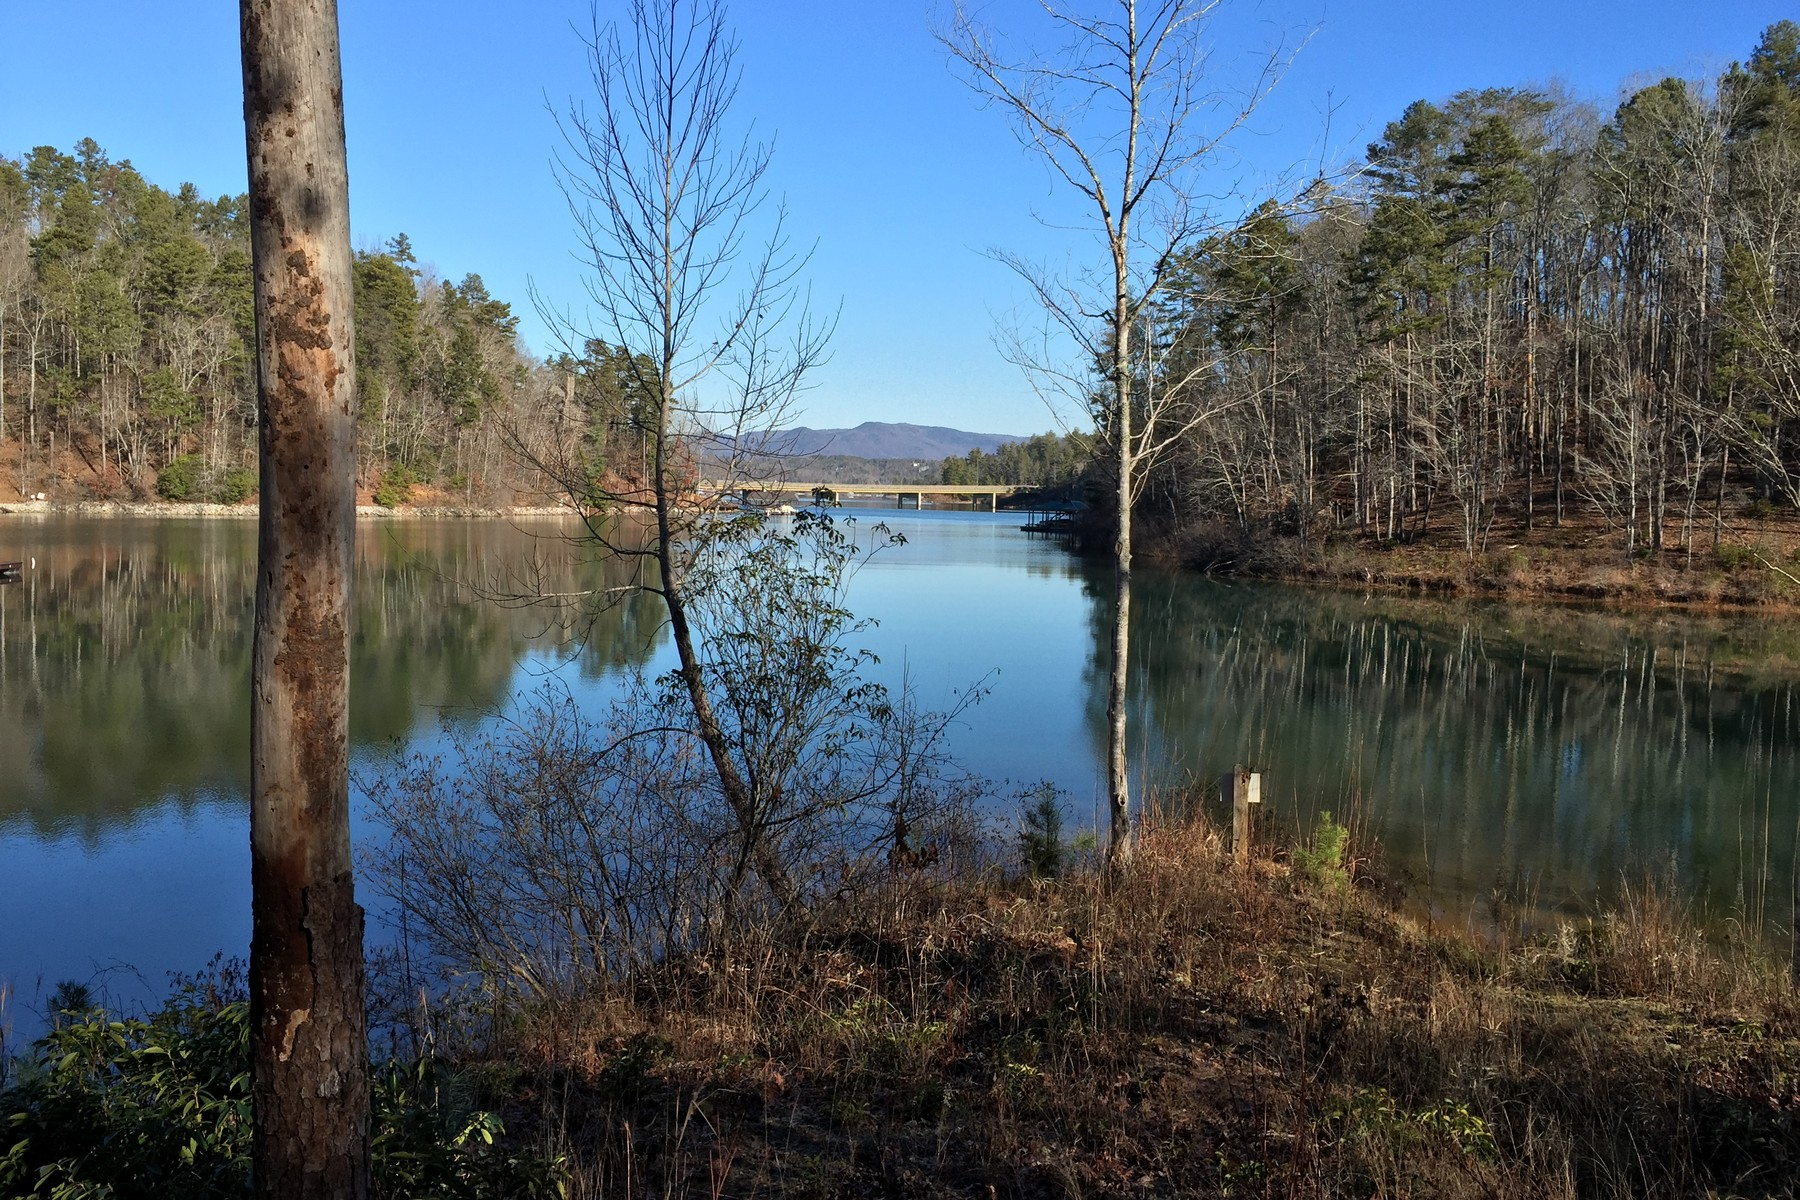 Land for Sale at Deep Water Cove AR42 The Cliffs At Keowee Falls, Salem, South Carolina 29676 United States